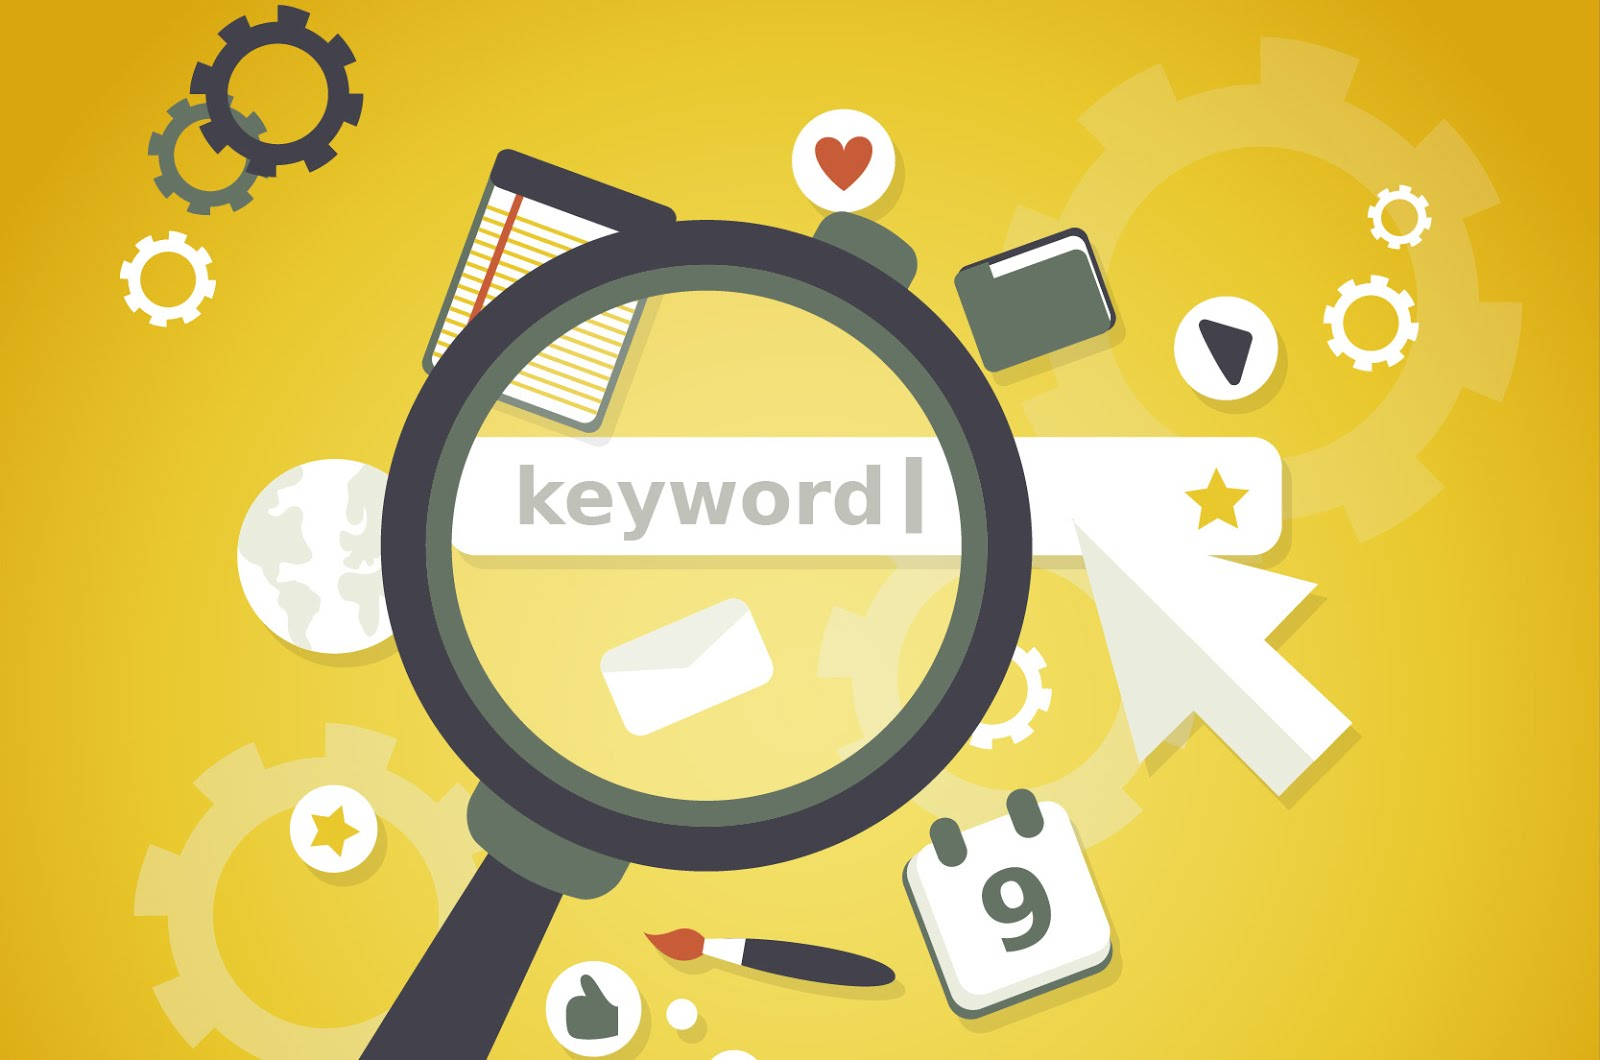 Keyword 5 Reasons Why Keyword Research Is Important For Your